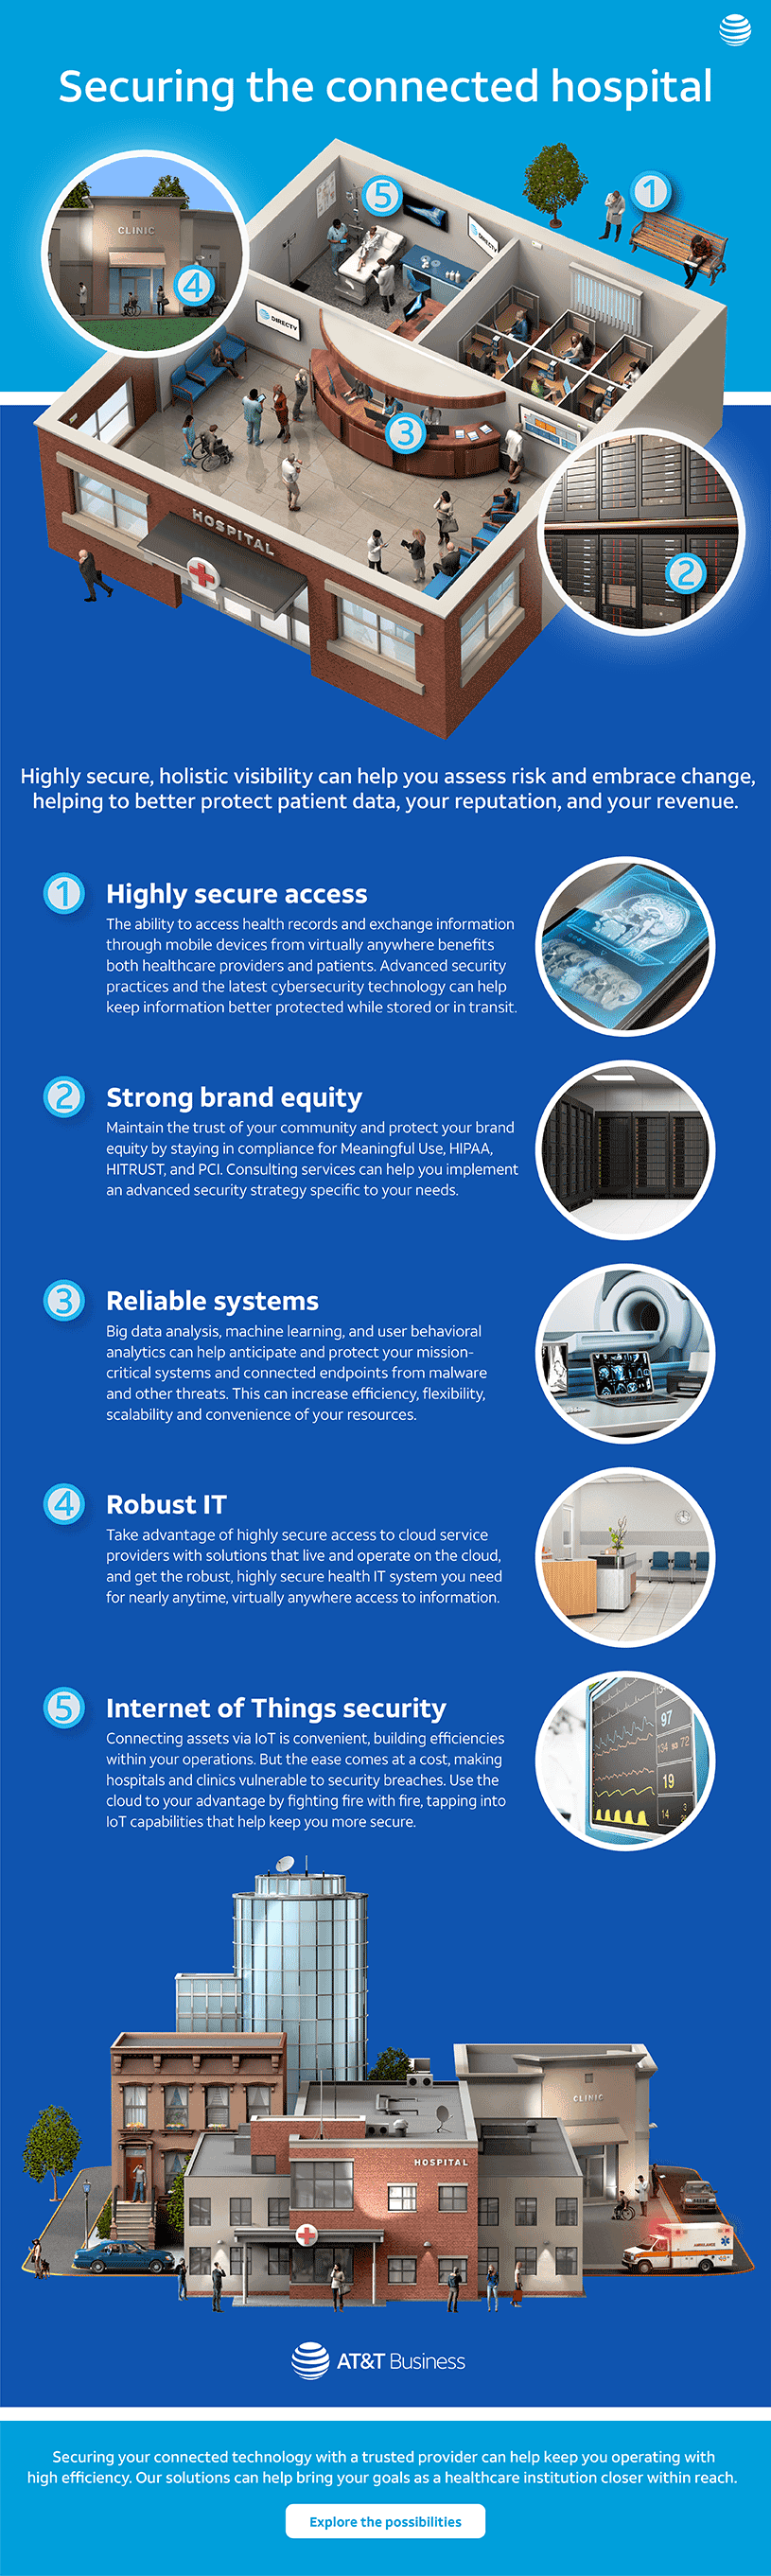 Securing the Connected Hospital Infographic